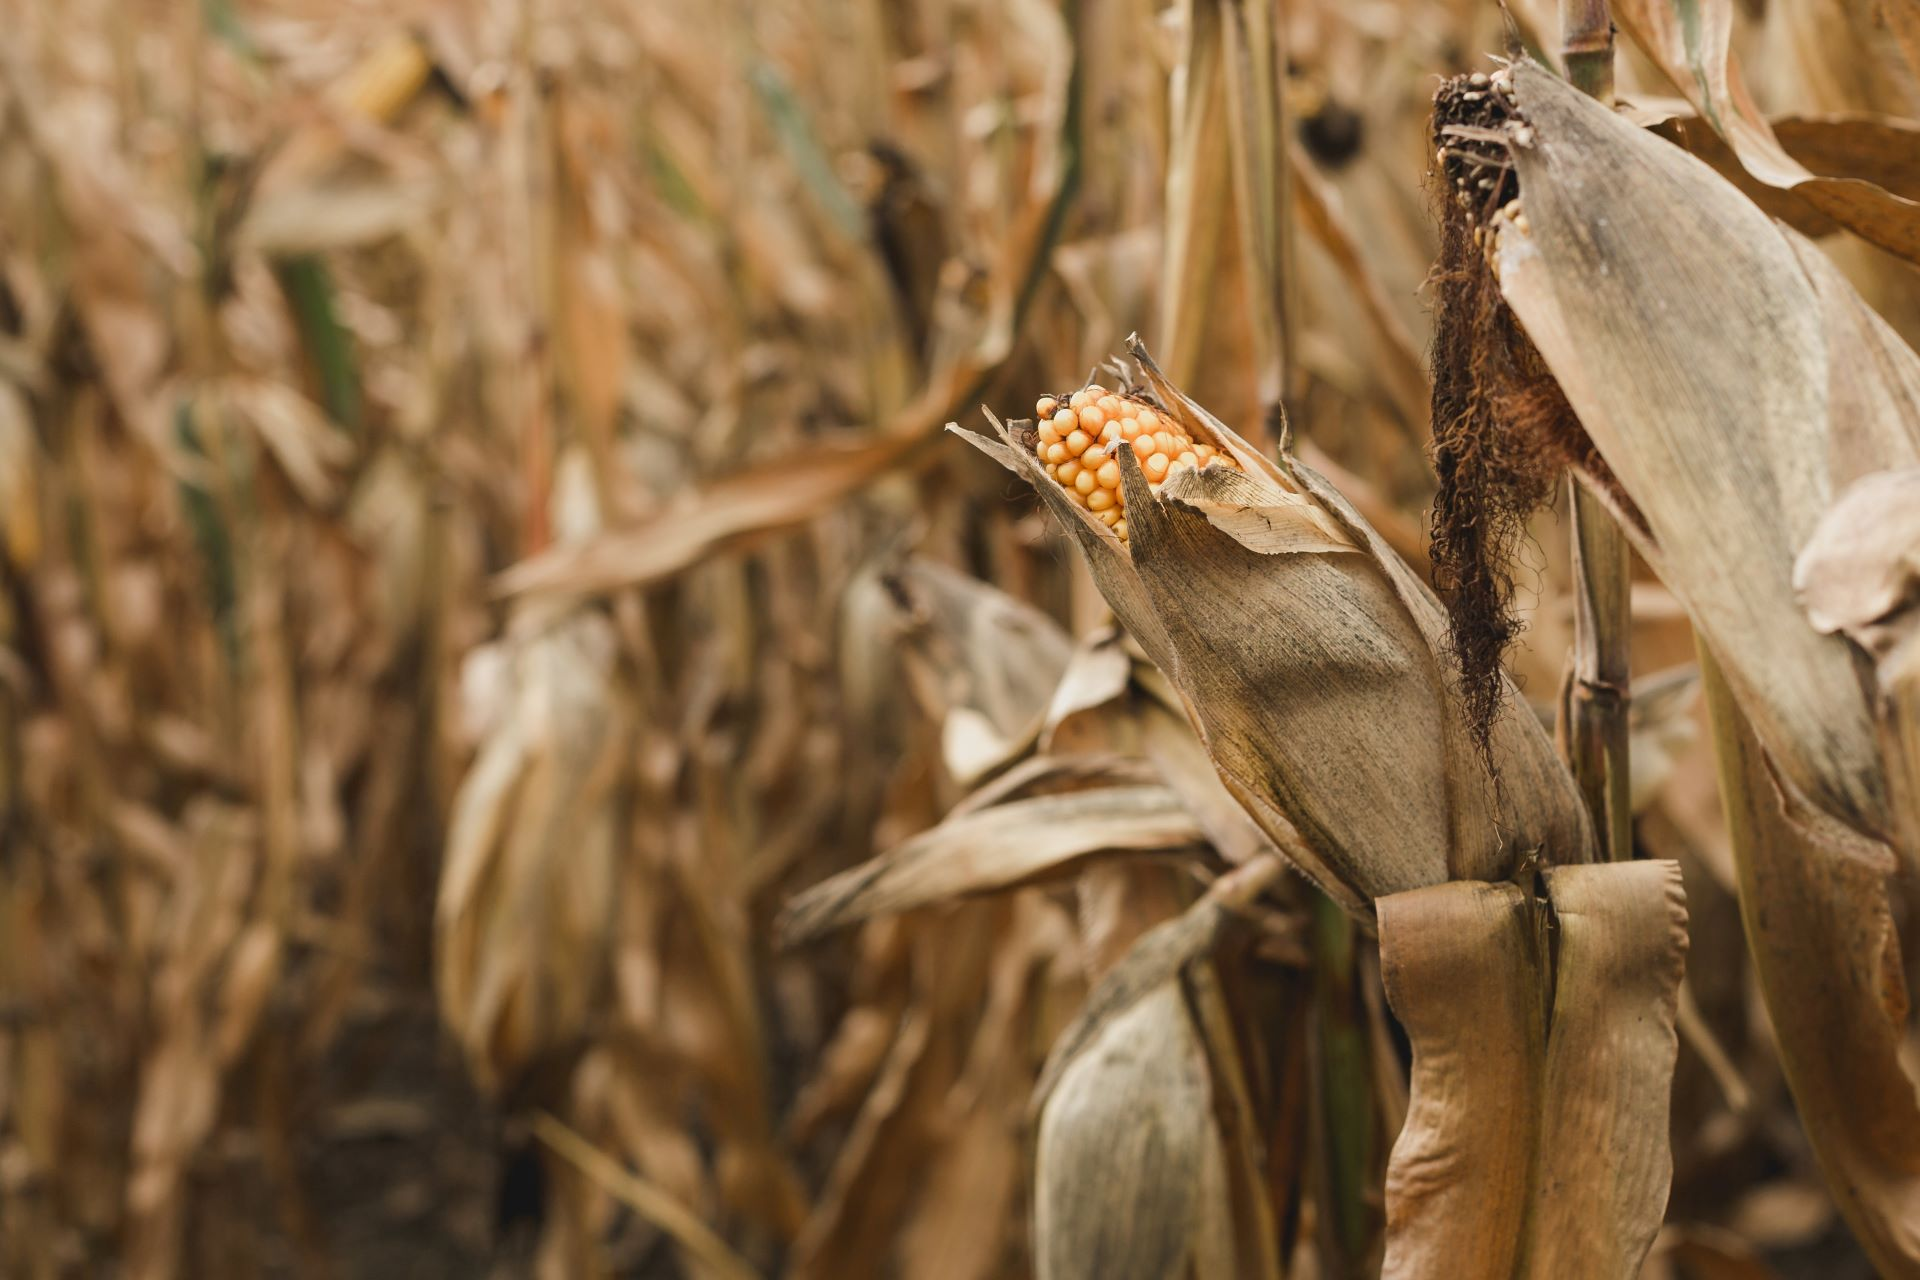 ubs-launches-credit-card-made-of-corn